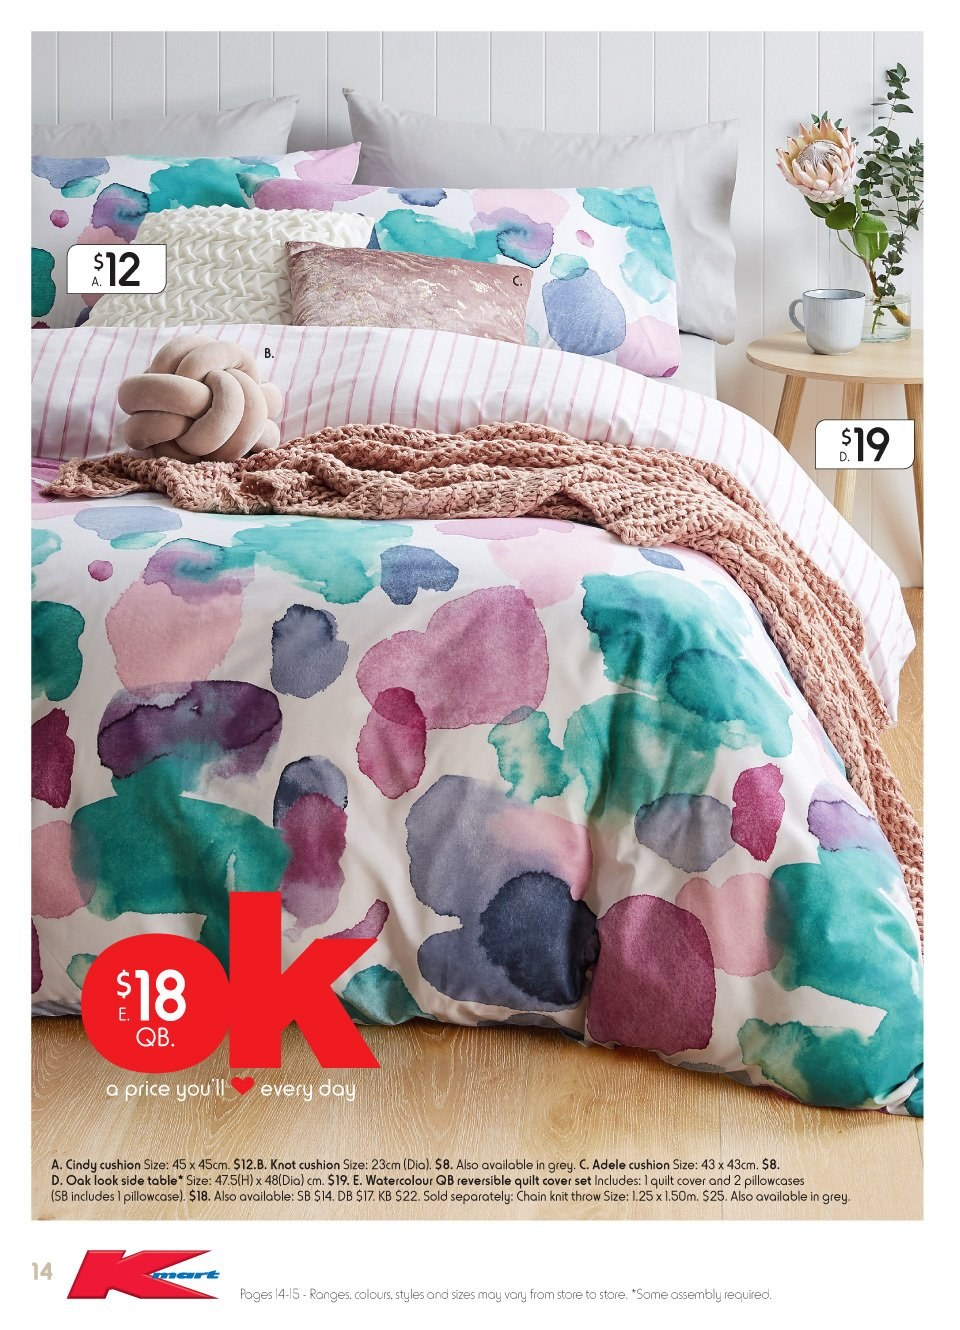 Kmart catalogue  - 2.8.2018 - 22.8.2018. Page 14.